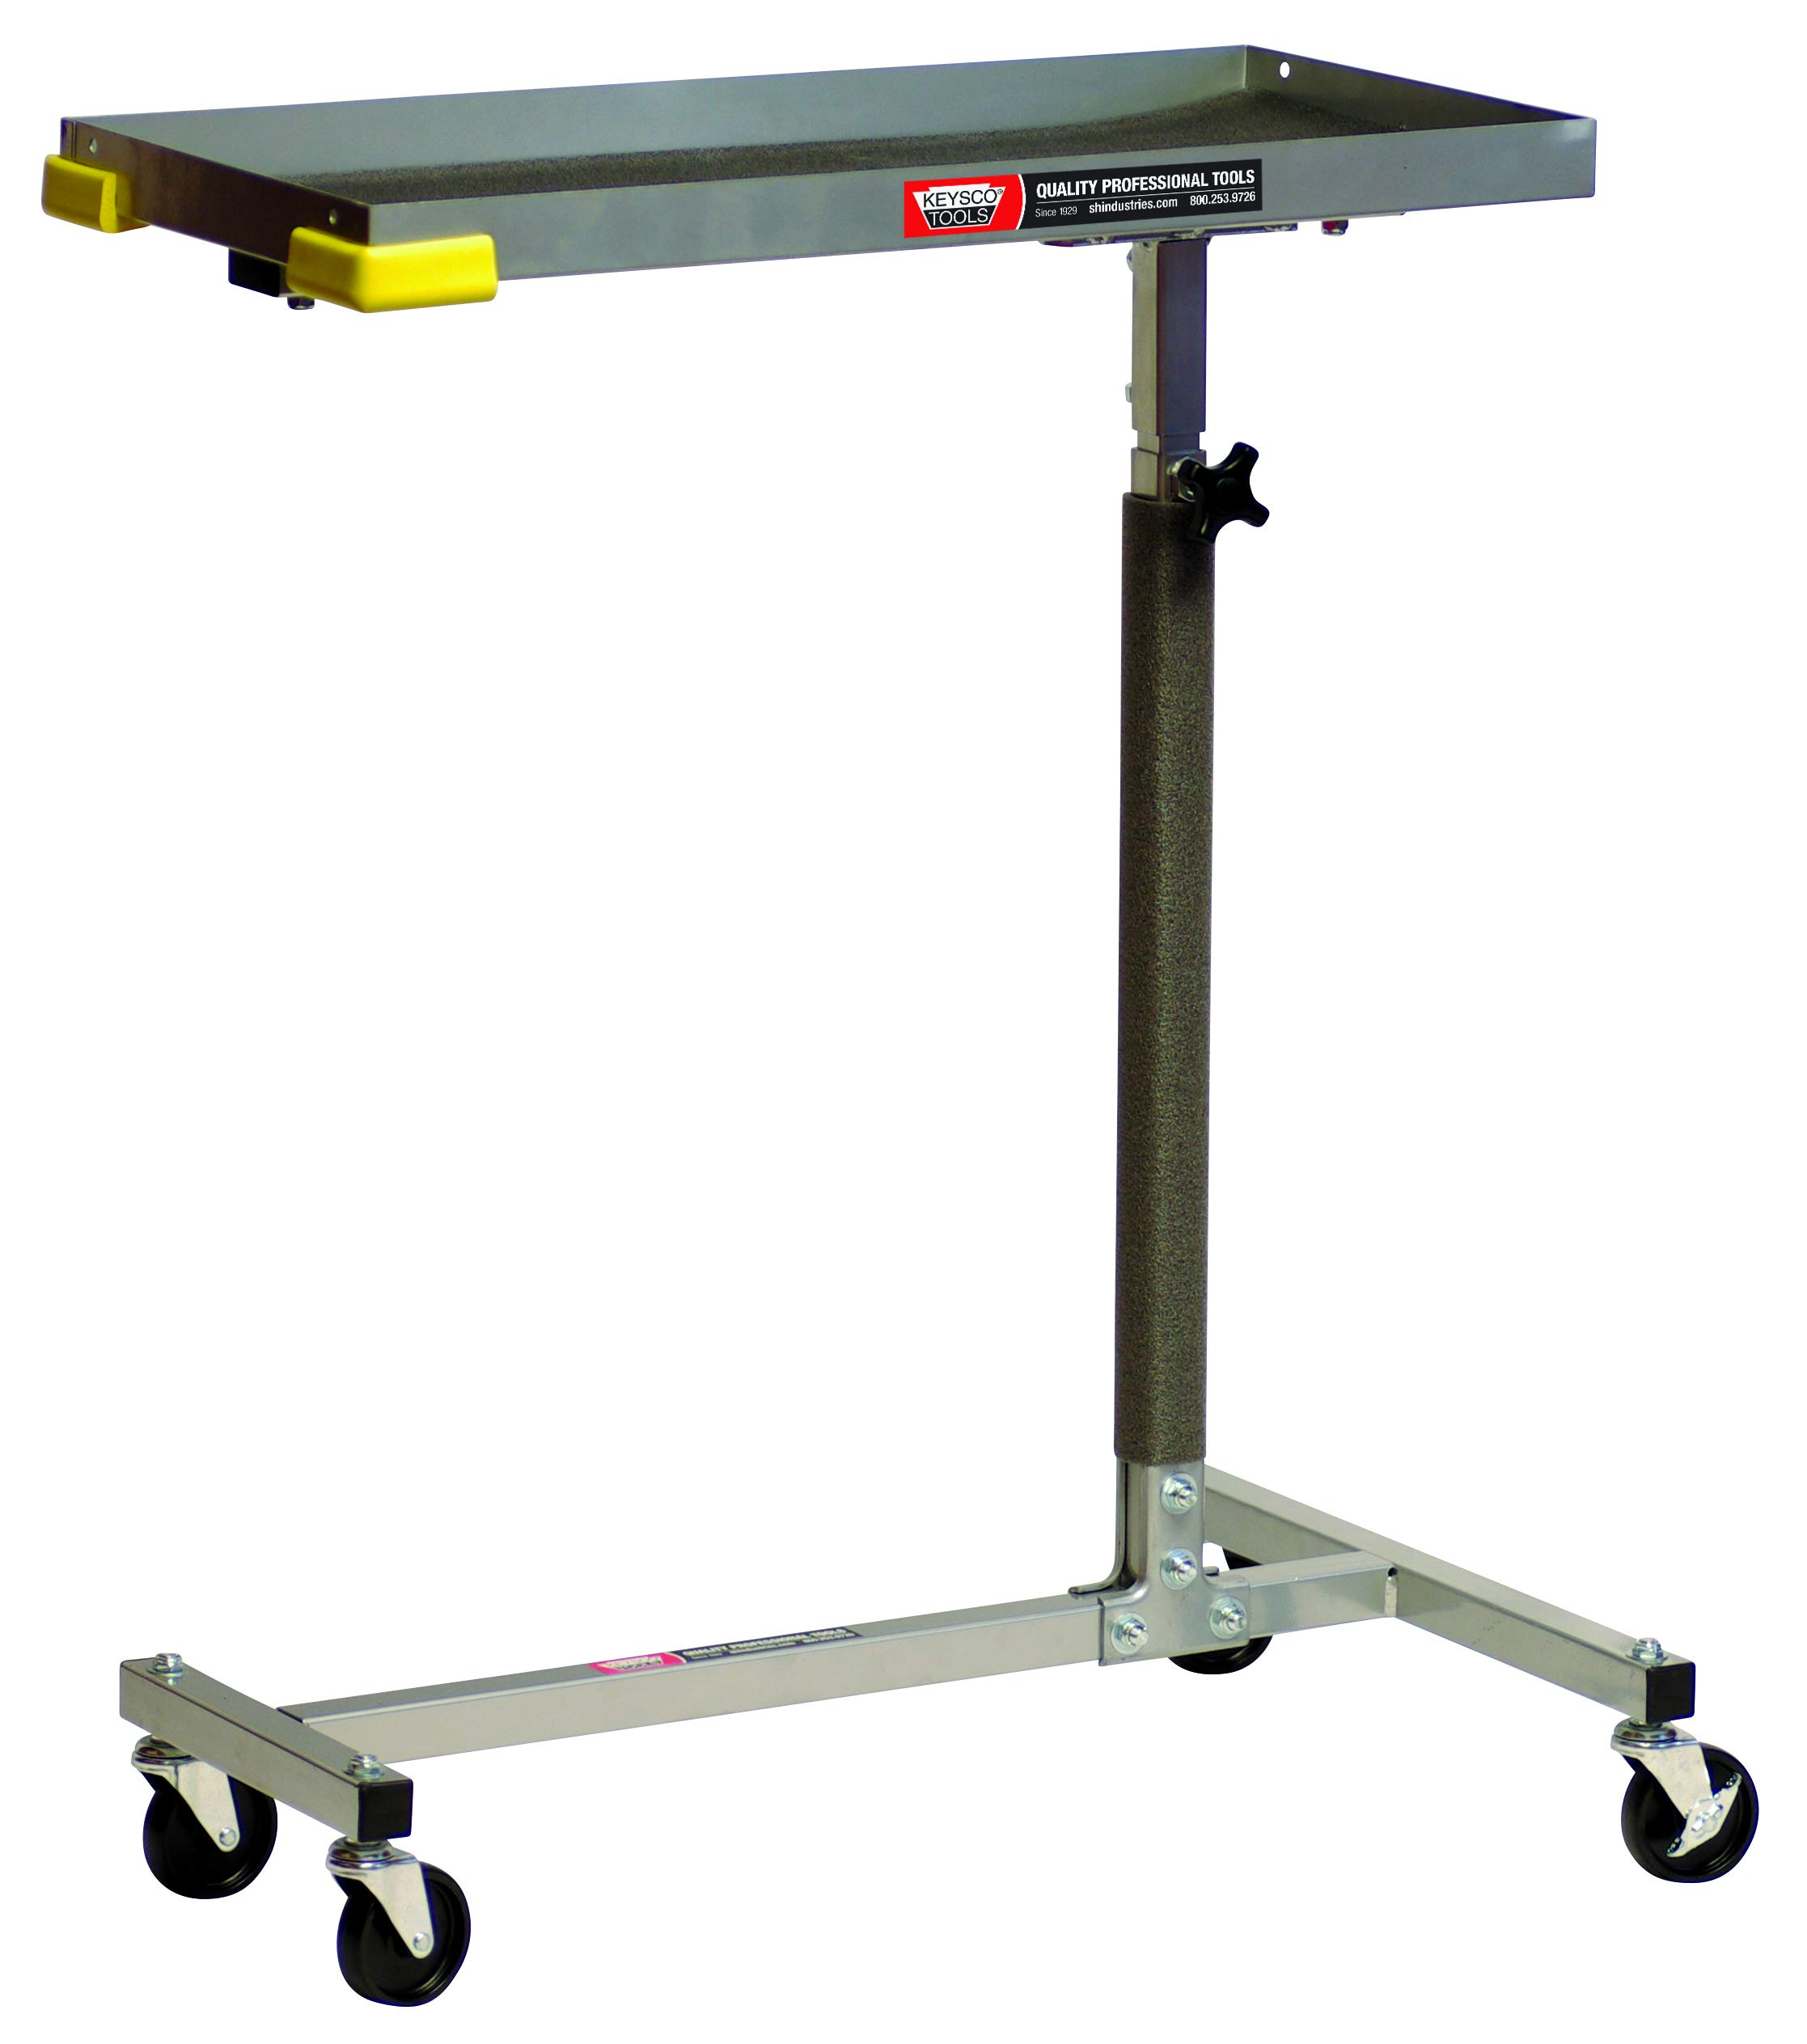 Keysco 78035 Mechanics Mobile Tool Cart (Metal) by KEYSCO (Image #1)